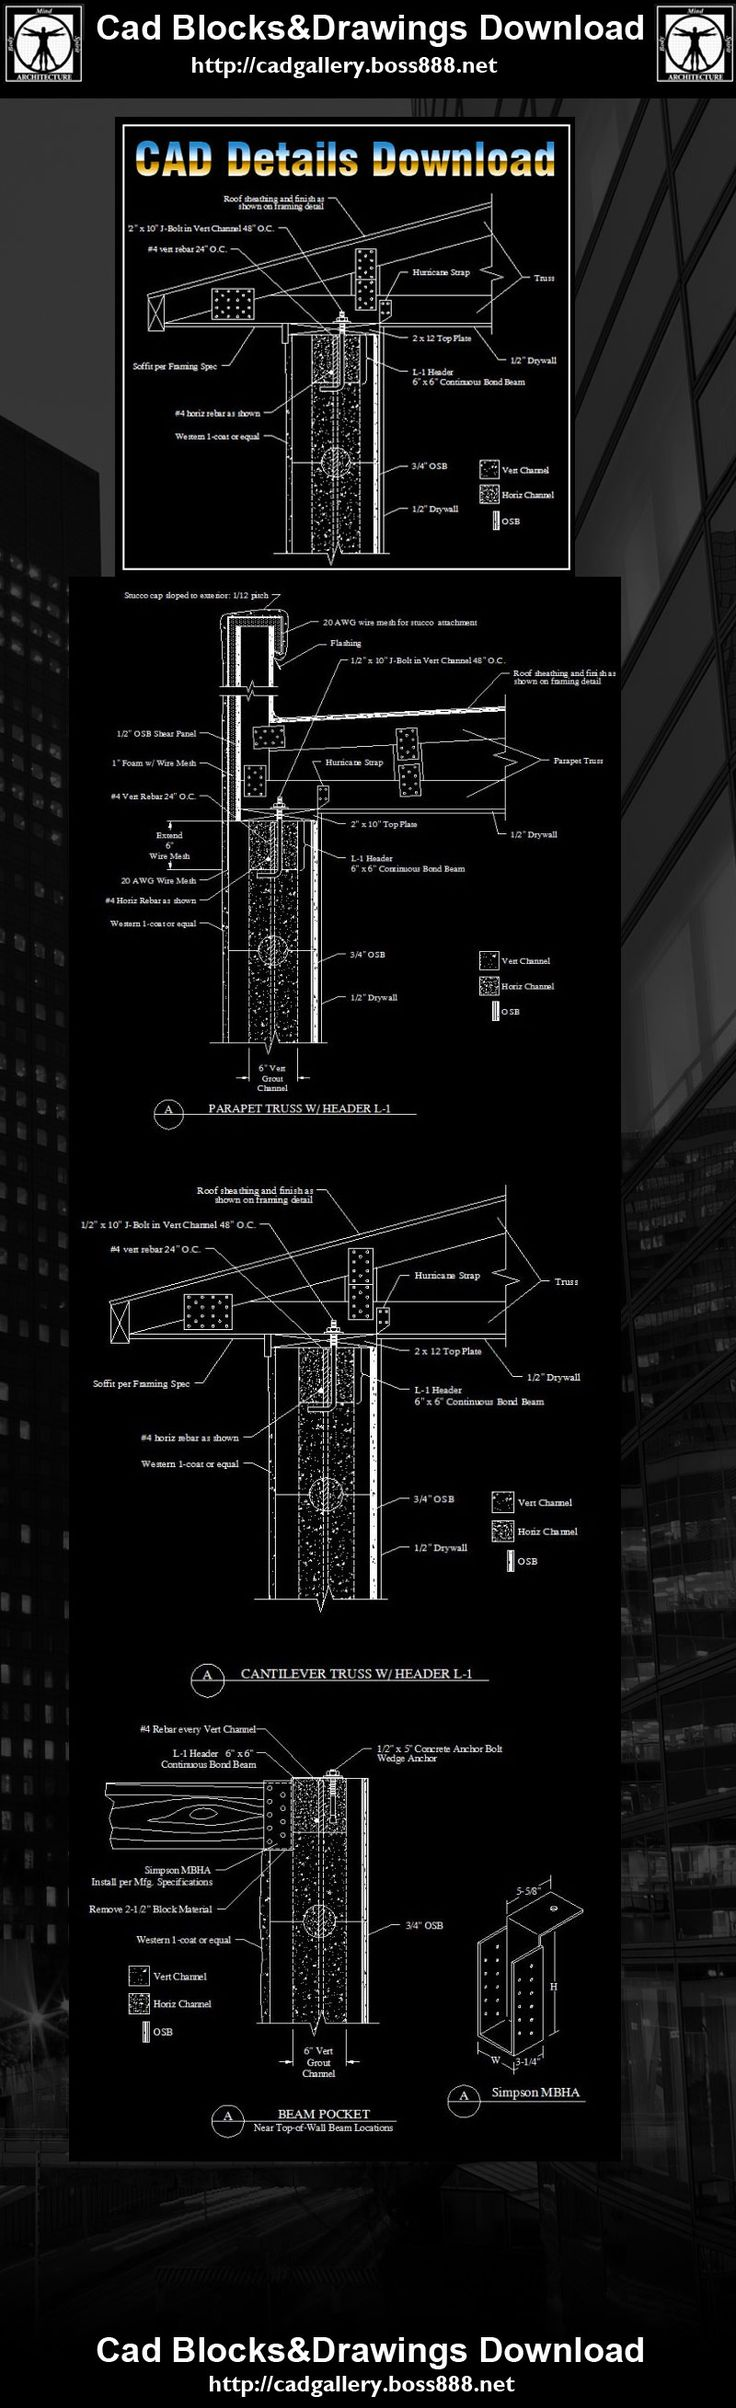 Architecture Drawing Symbols the 238 best images about autocad on pinterest | architecture and